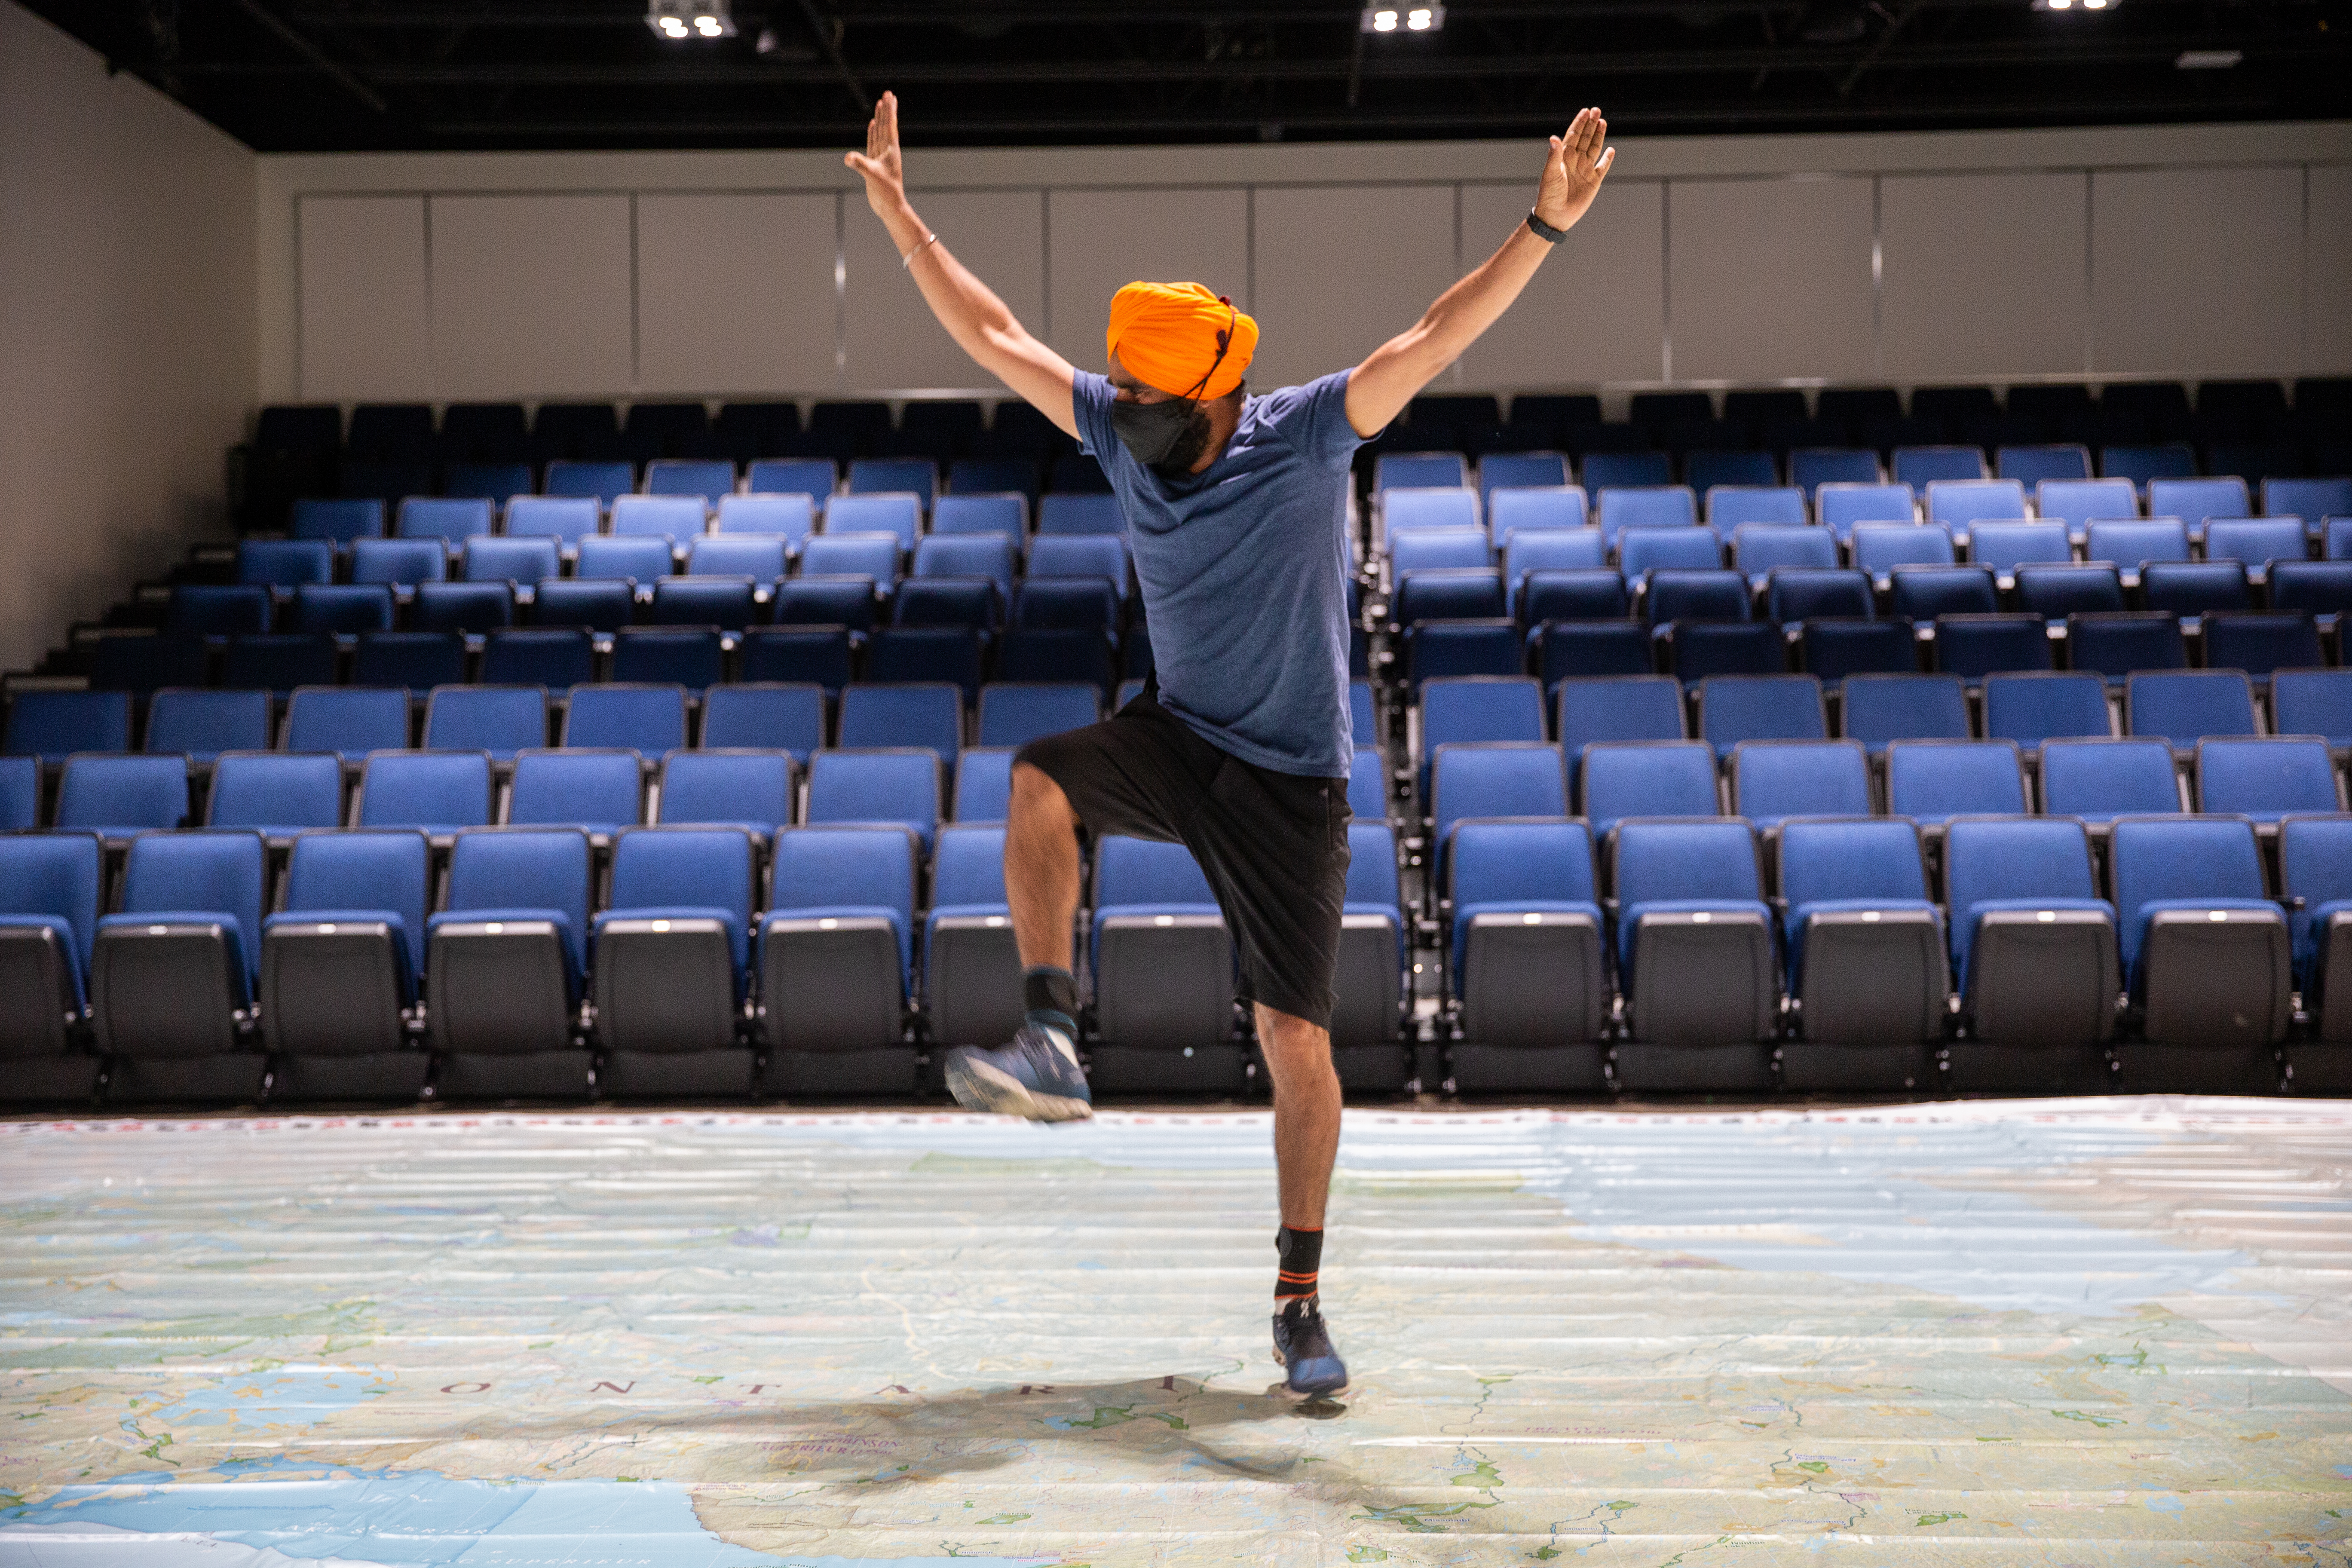 Gurdeep Pandher, who wears an orange turban, blue shirt and shorts, dances on a Giant Floor Map of Ontario in the Society's auditorium